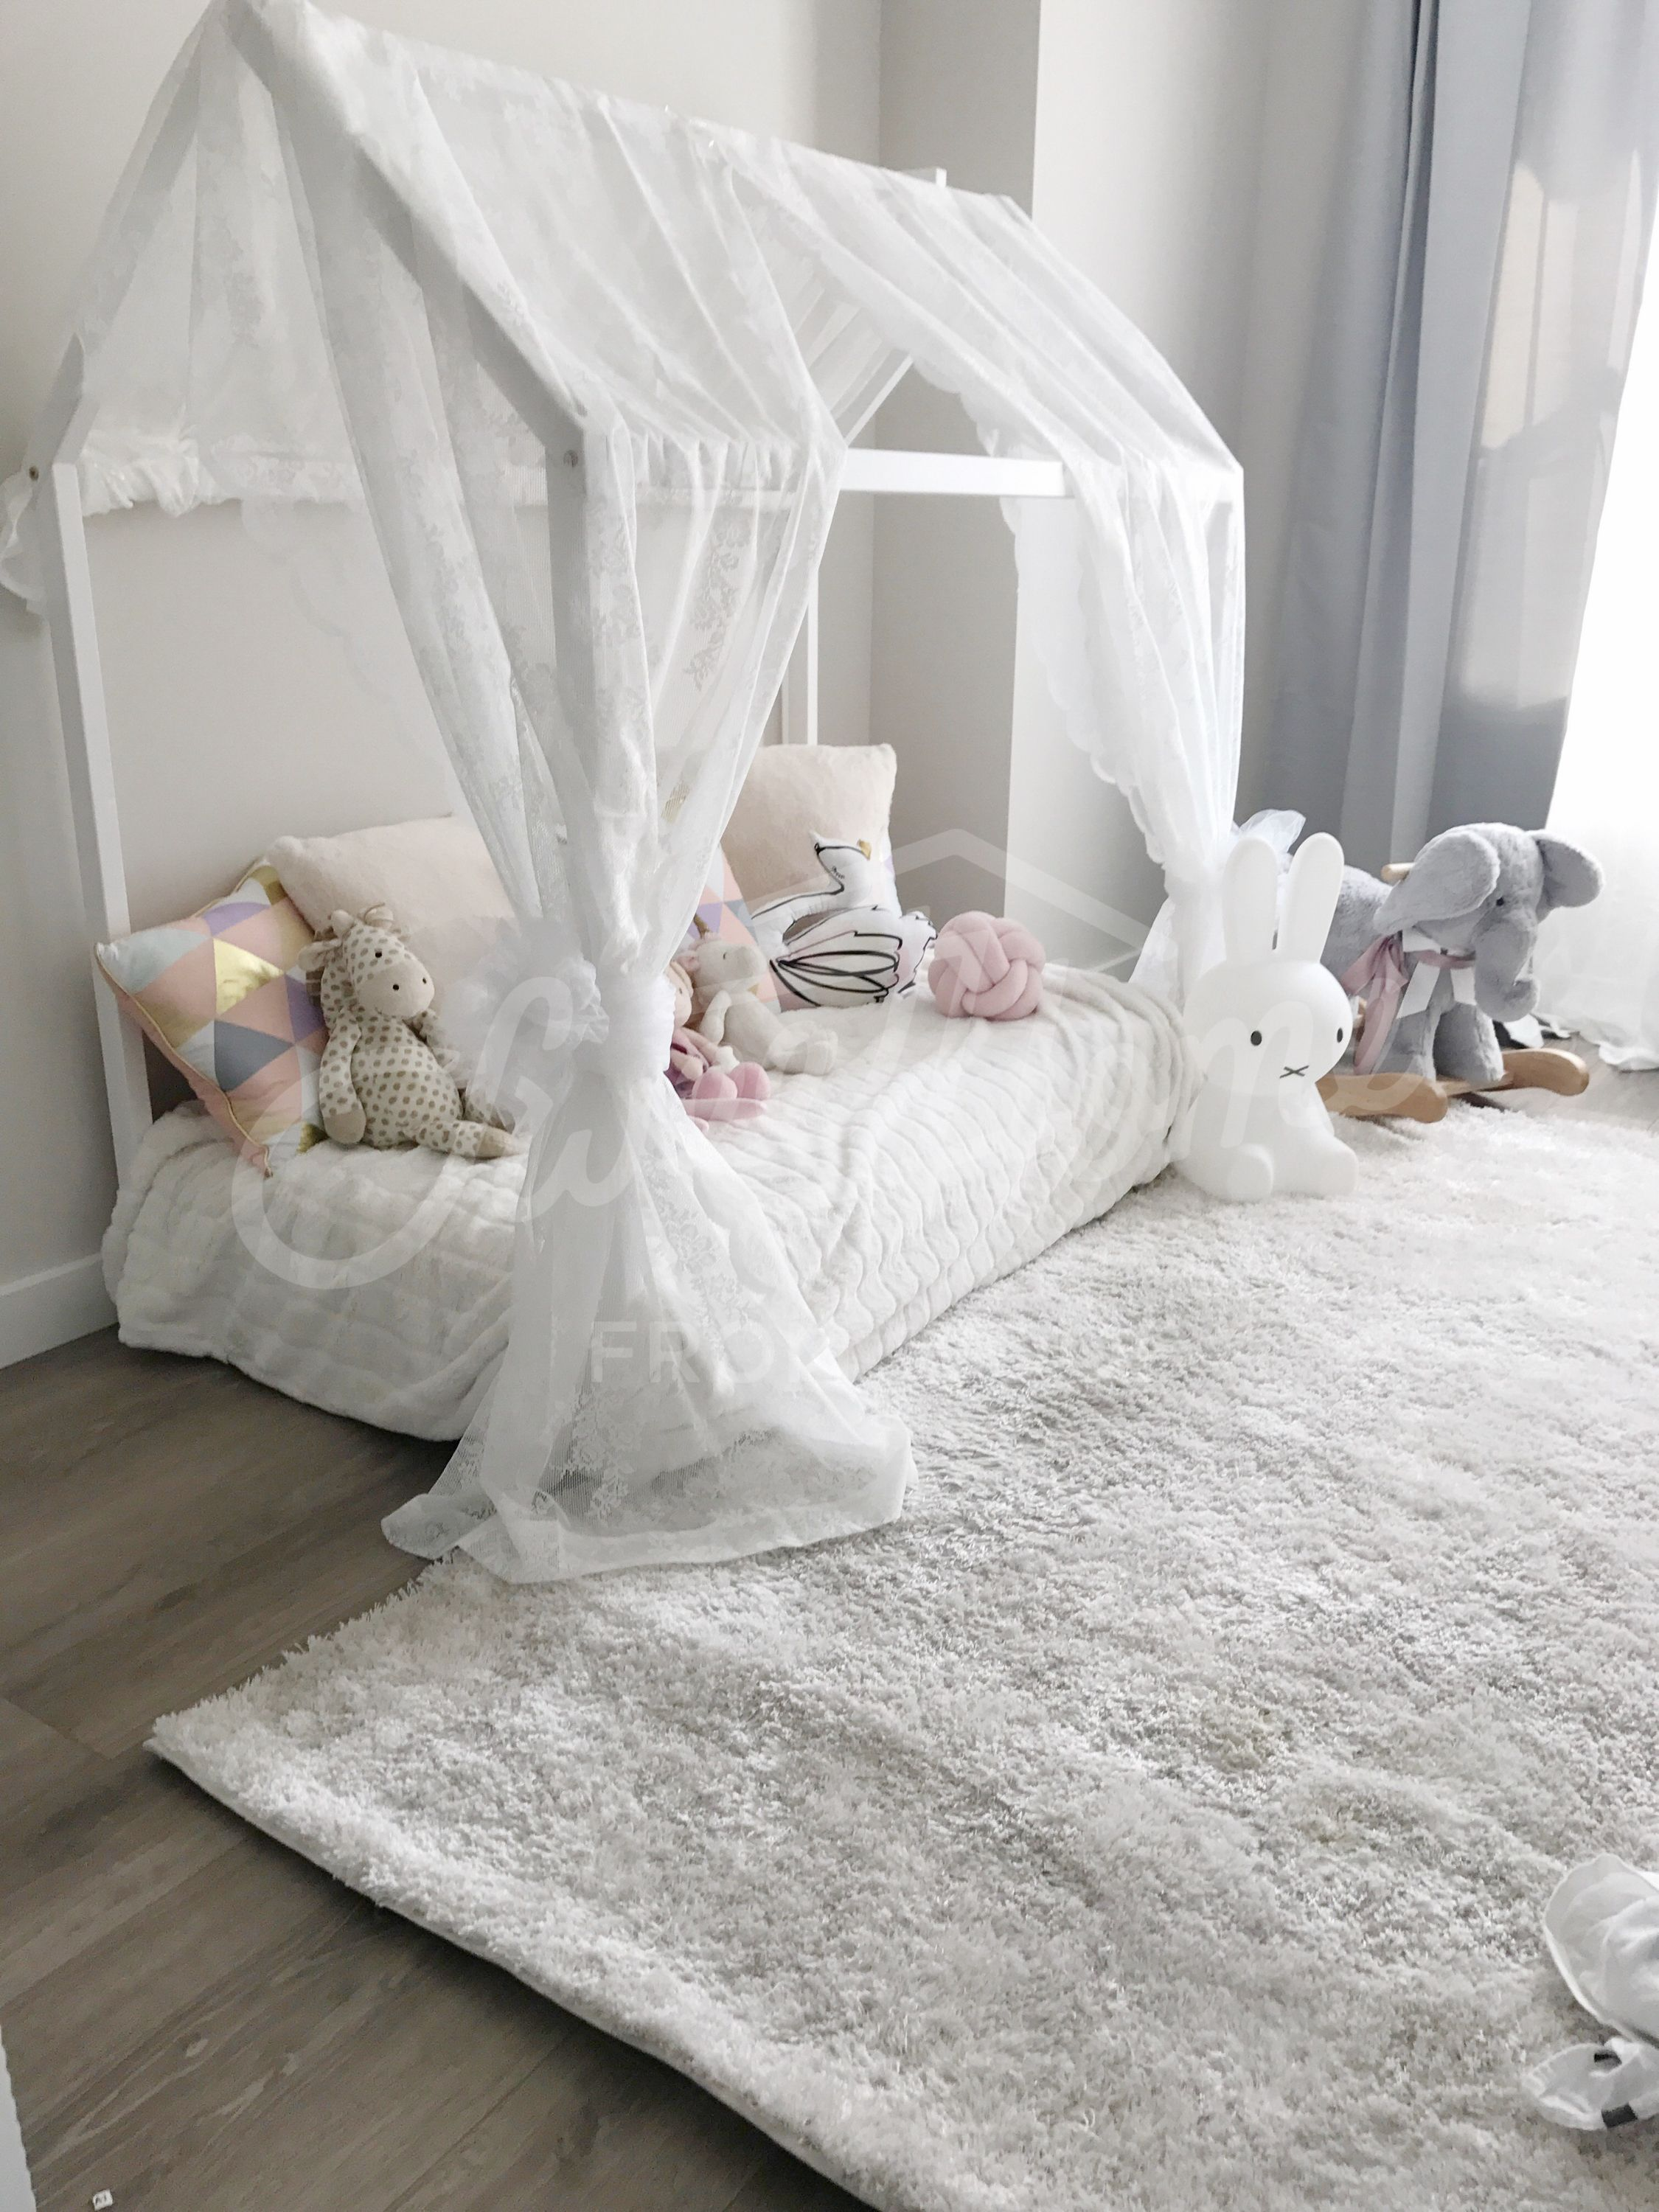 White Little Princess Room Toddler Bed House Shaped Bed Nursery